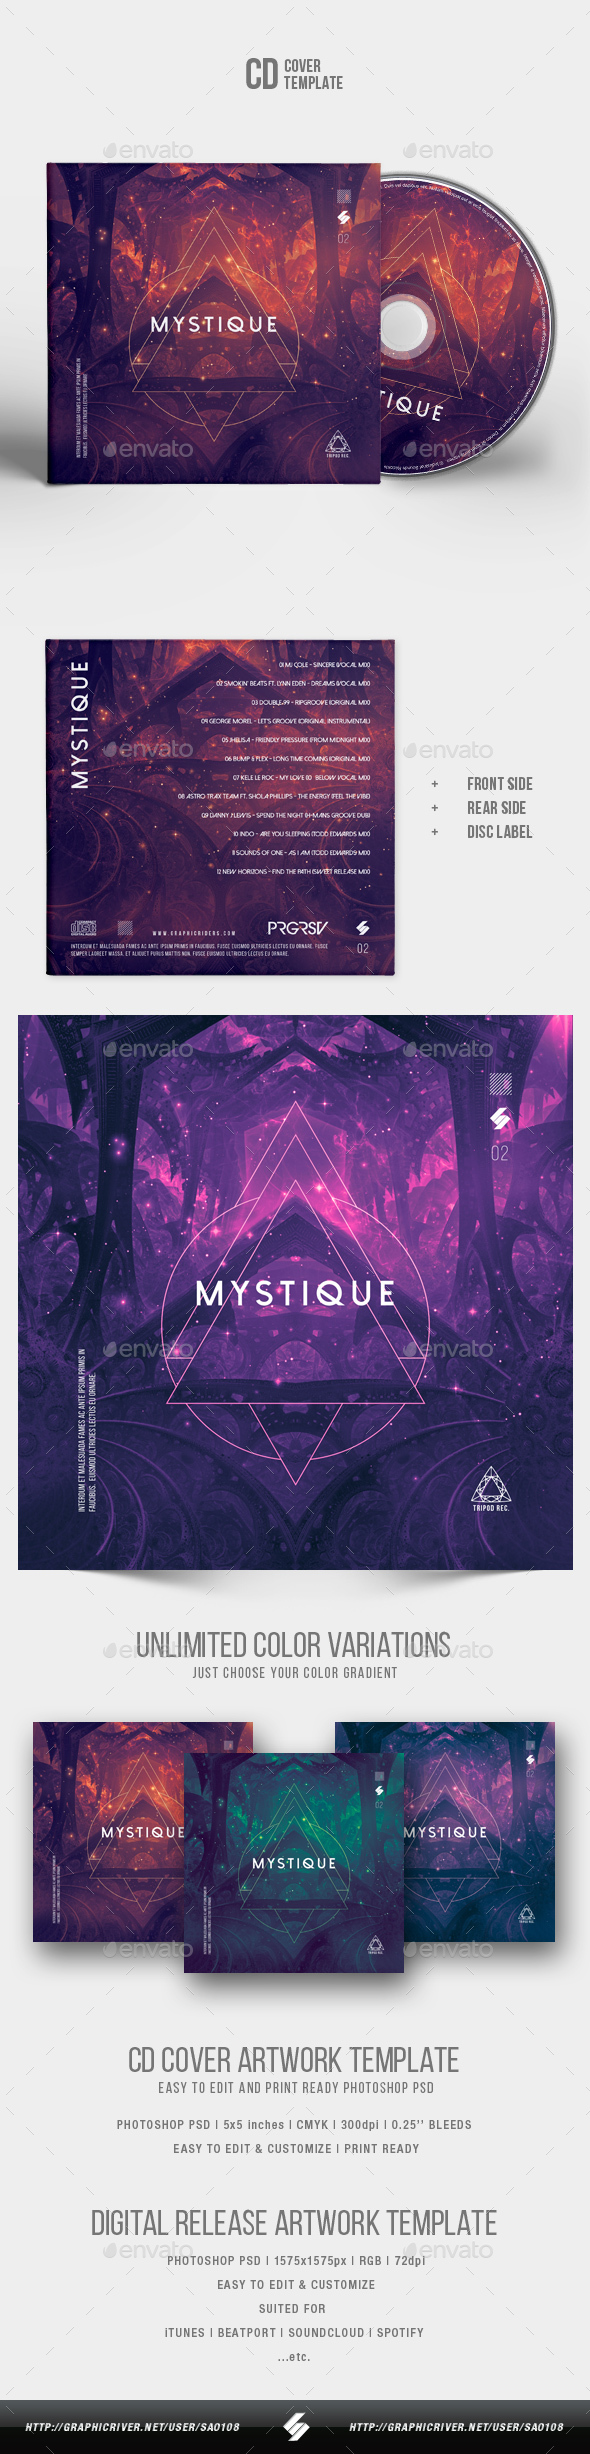 Mystique - CD Cover Artwork Template - CD & DVD Artwork Print Templates